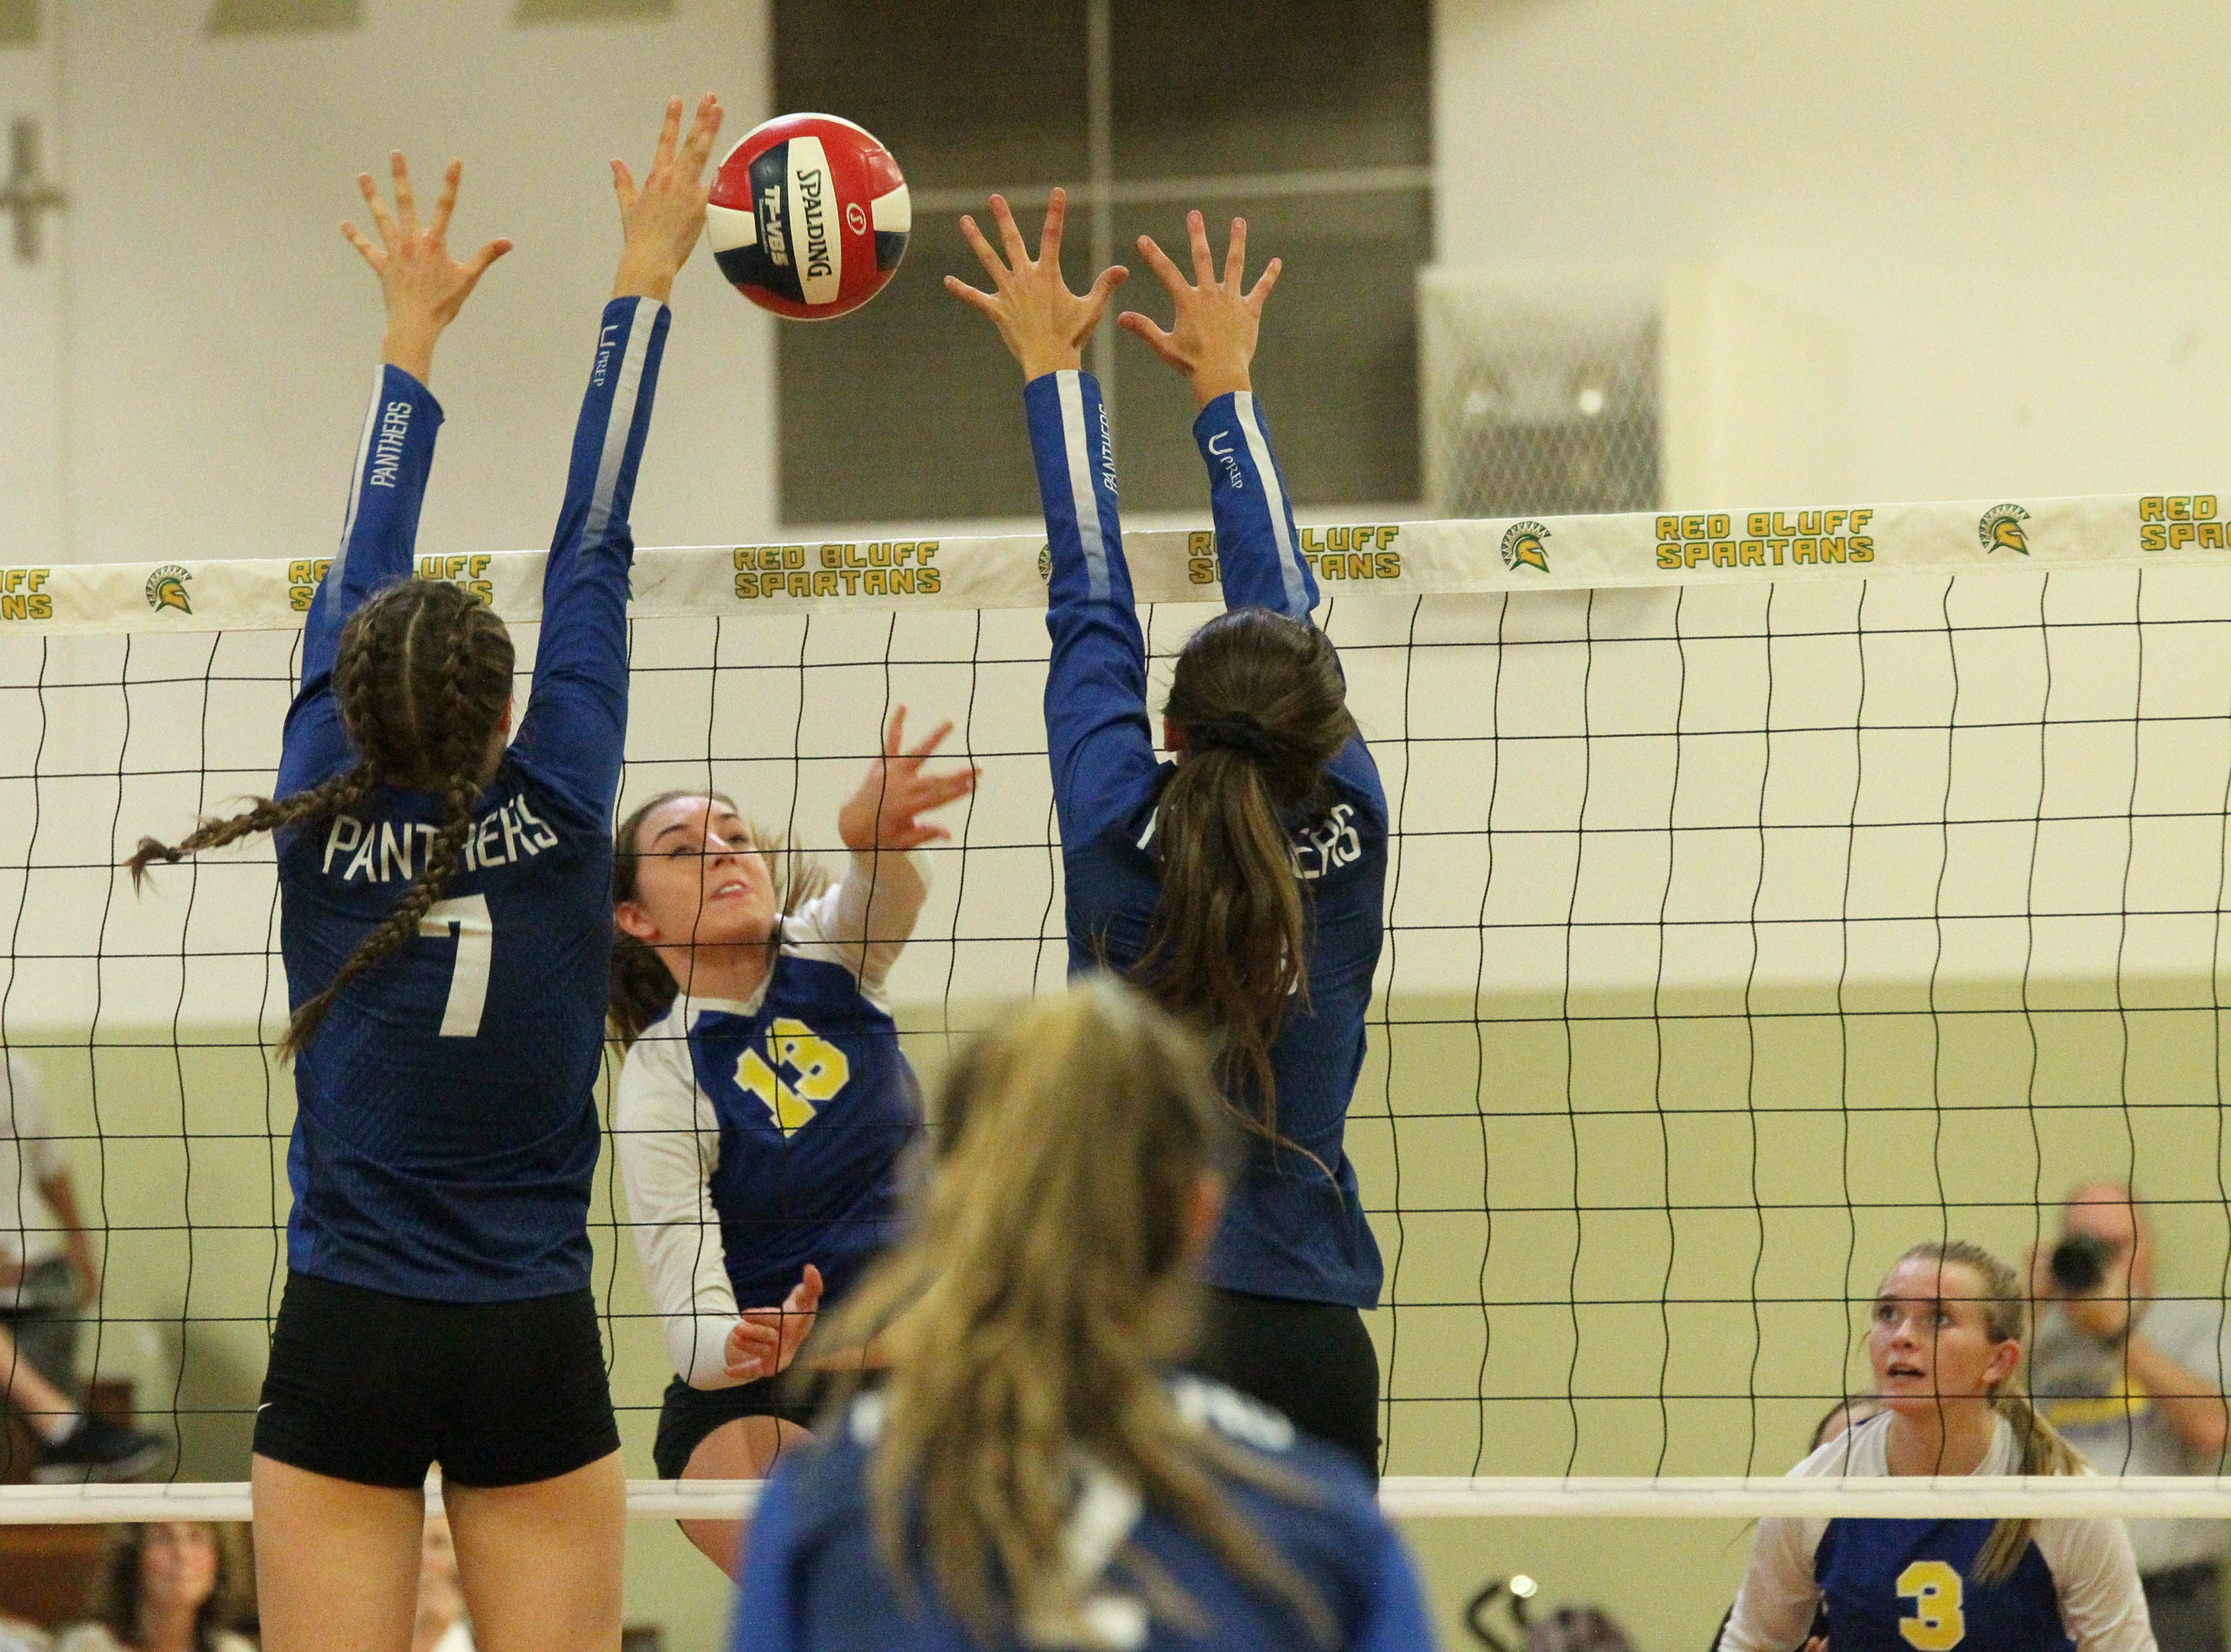 U-Prep junior Kennedy Kremer (7) attempts to block a shot by Pierce junior Halle Charter (13) in the Division IV Northern Section volleyball championship on Saturday, Nov. 3. Pierce won the match in three sets over U-Prep, 25-23, 25-21, 25-22.